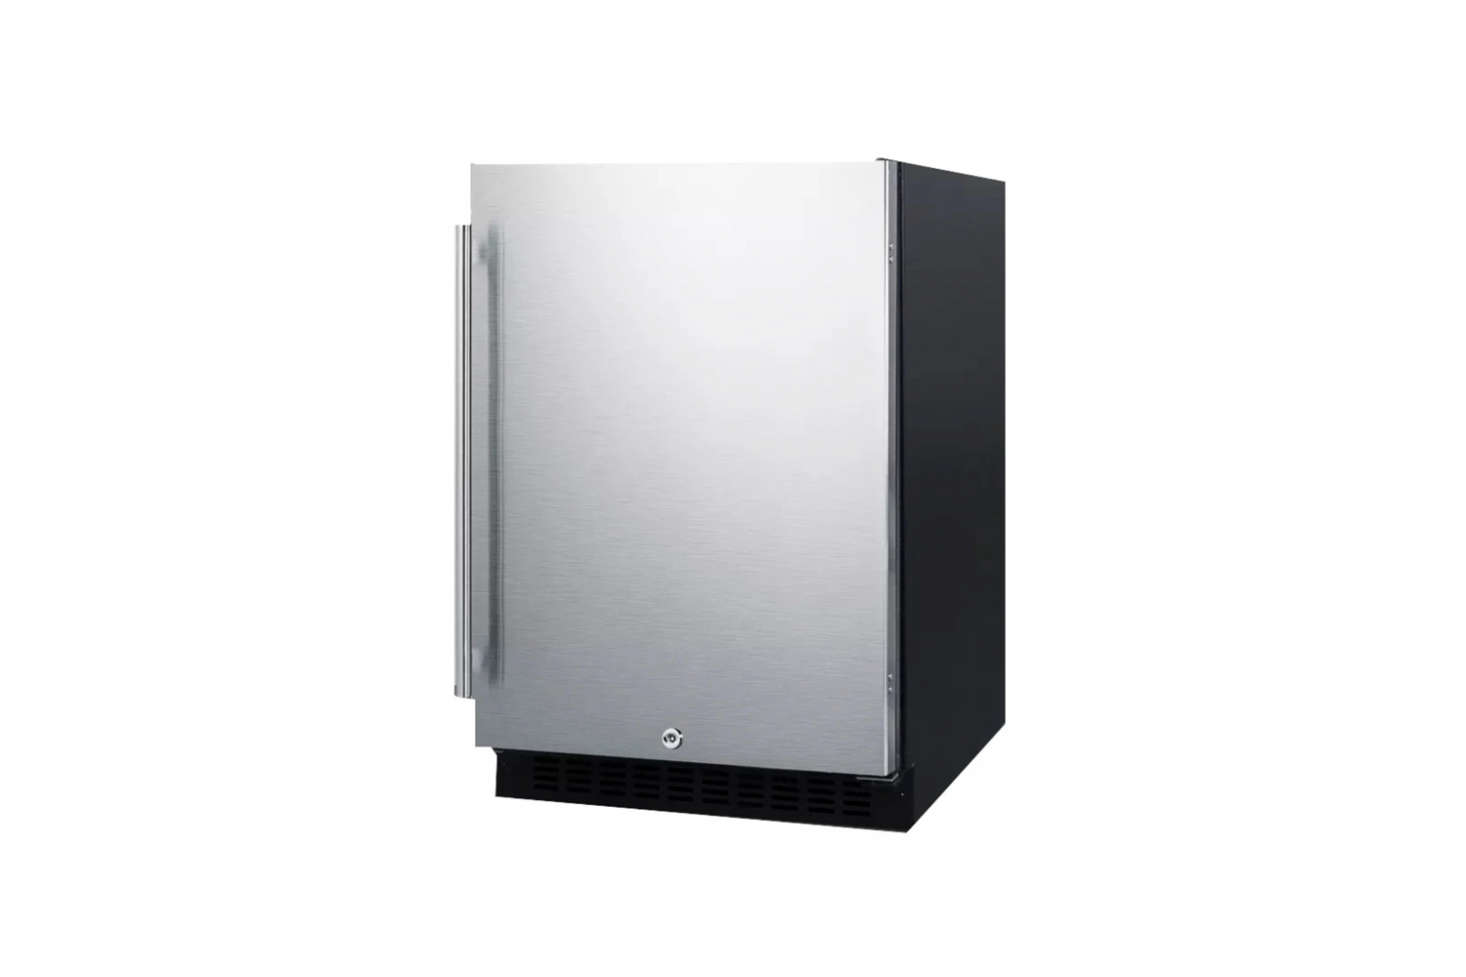 The Summit Undercounter Refrigerator (AL54) is $795.7